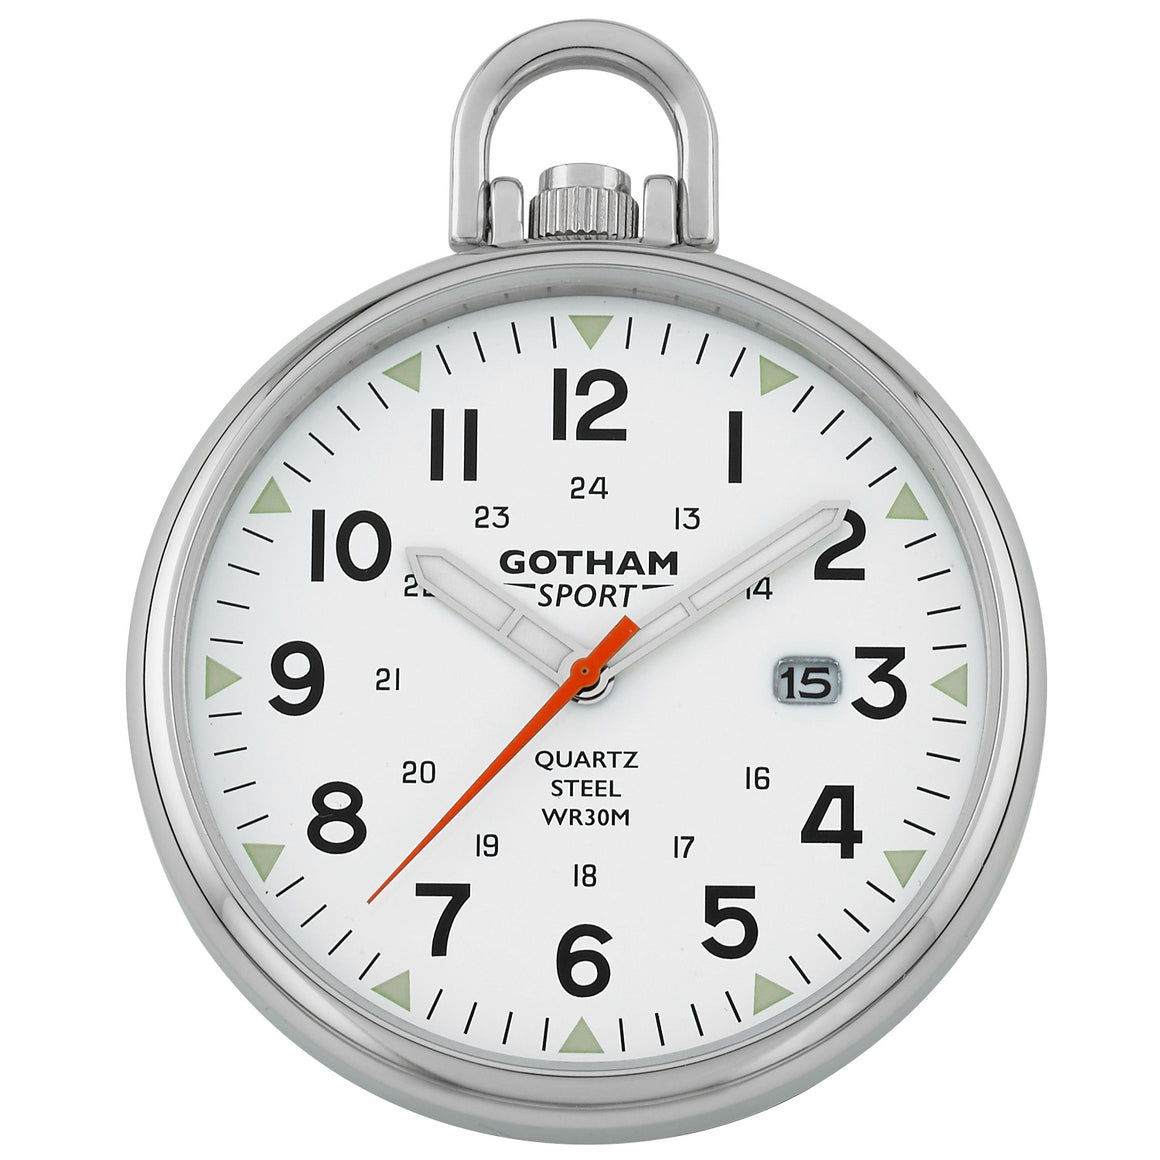 Gotham Men's Sport Series Stainless Steel Analog Quartz Date Pocket Watch # GWC14109S - Gotham Watch